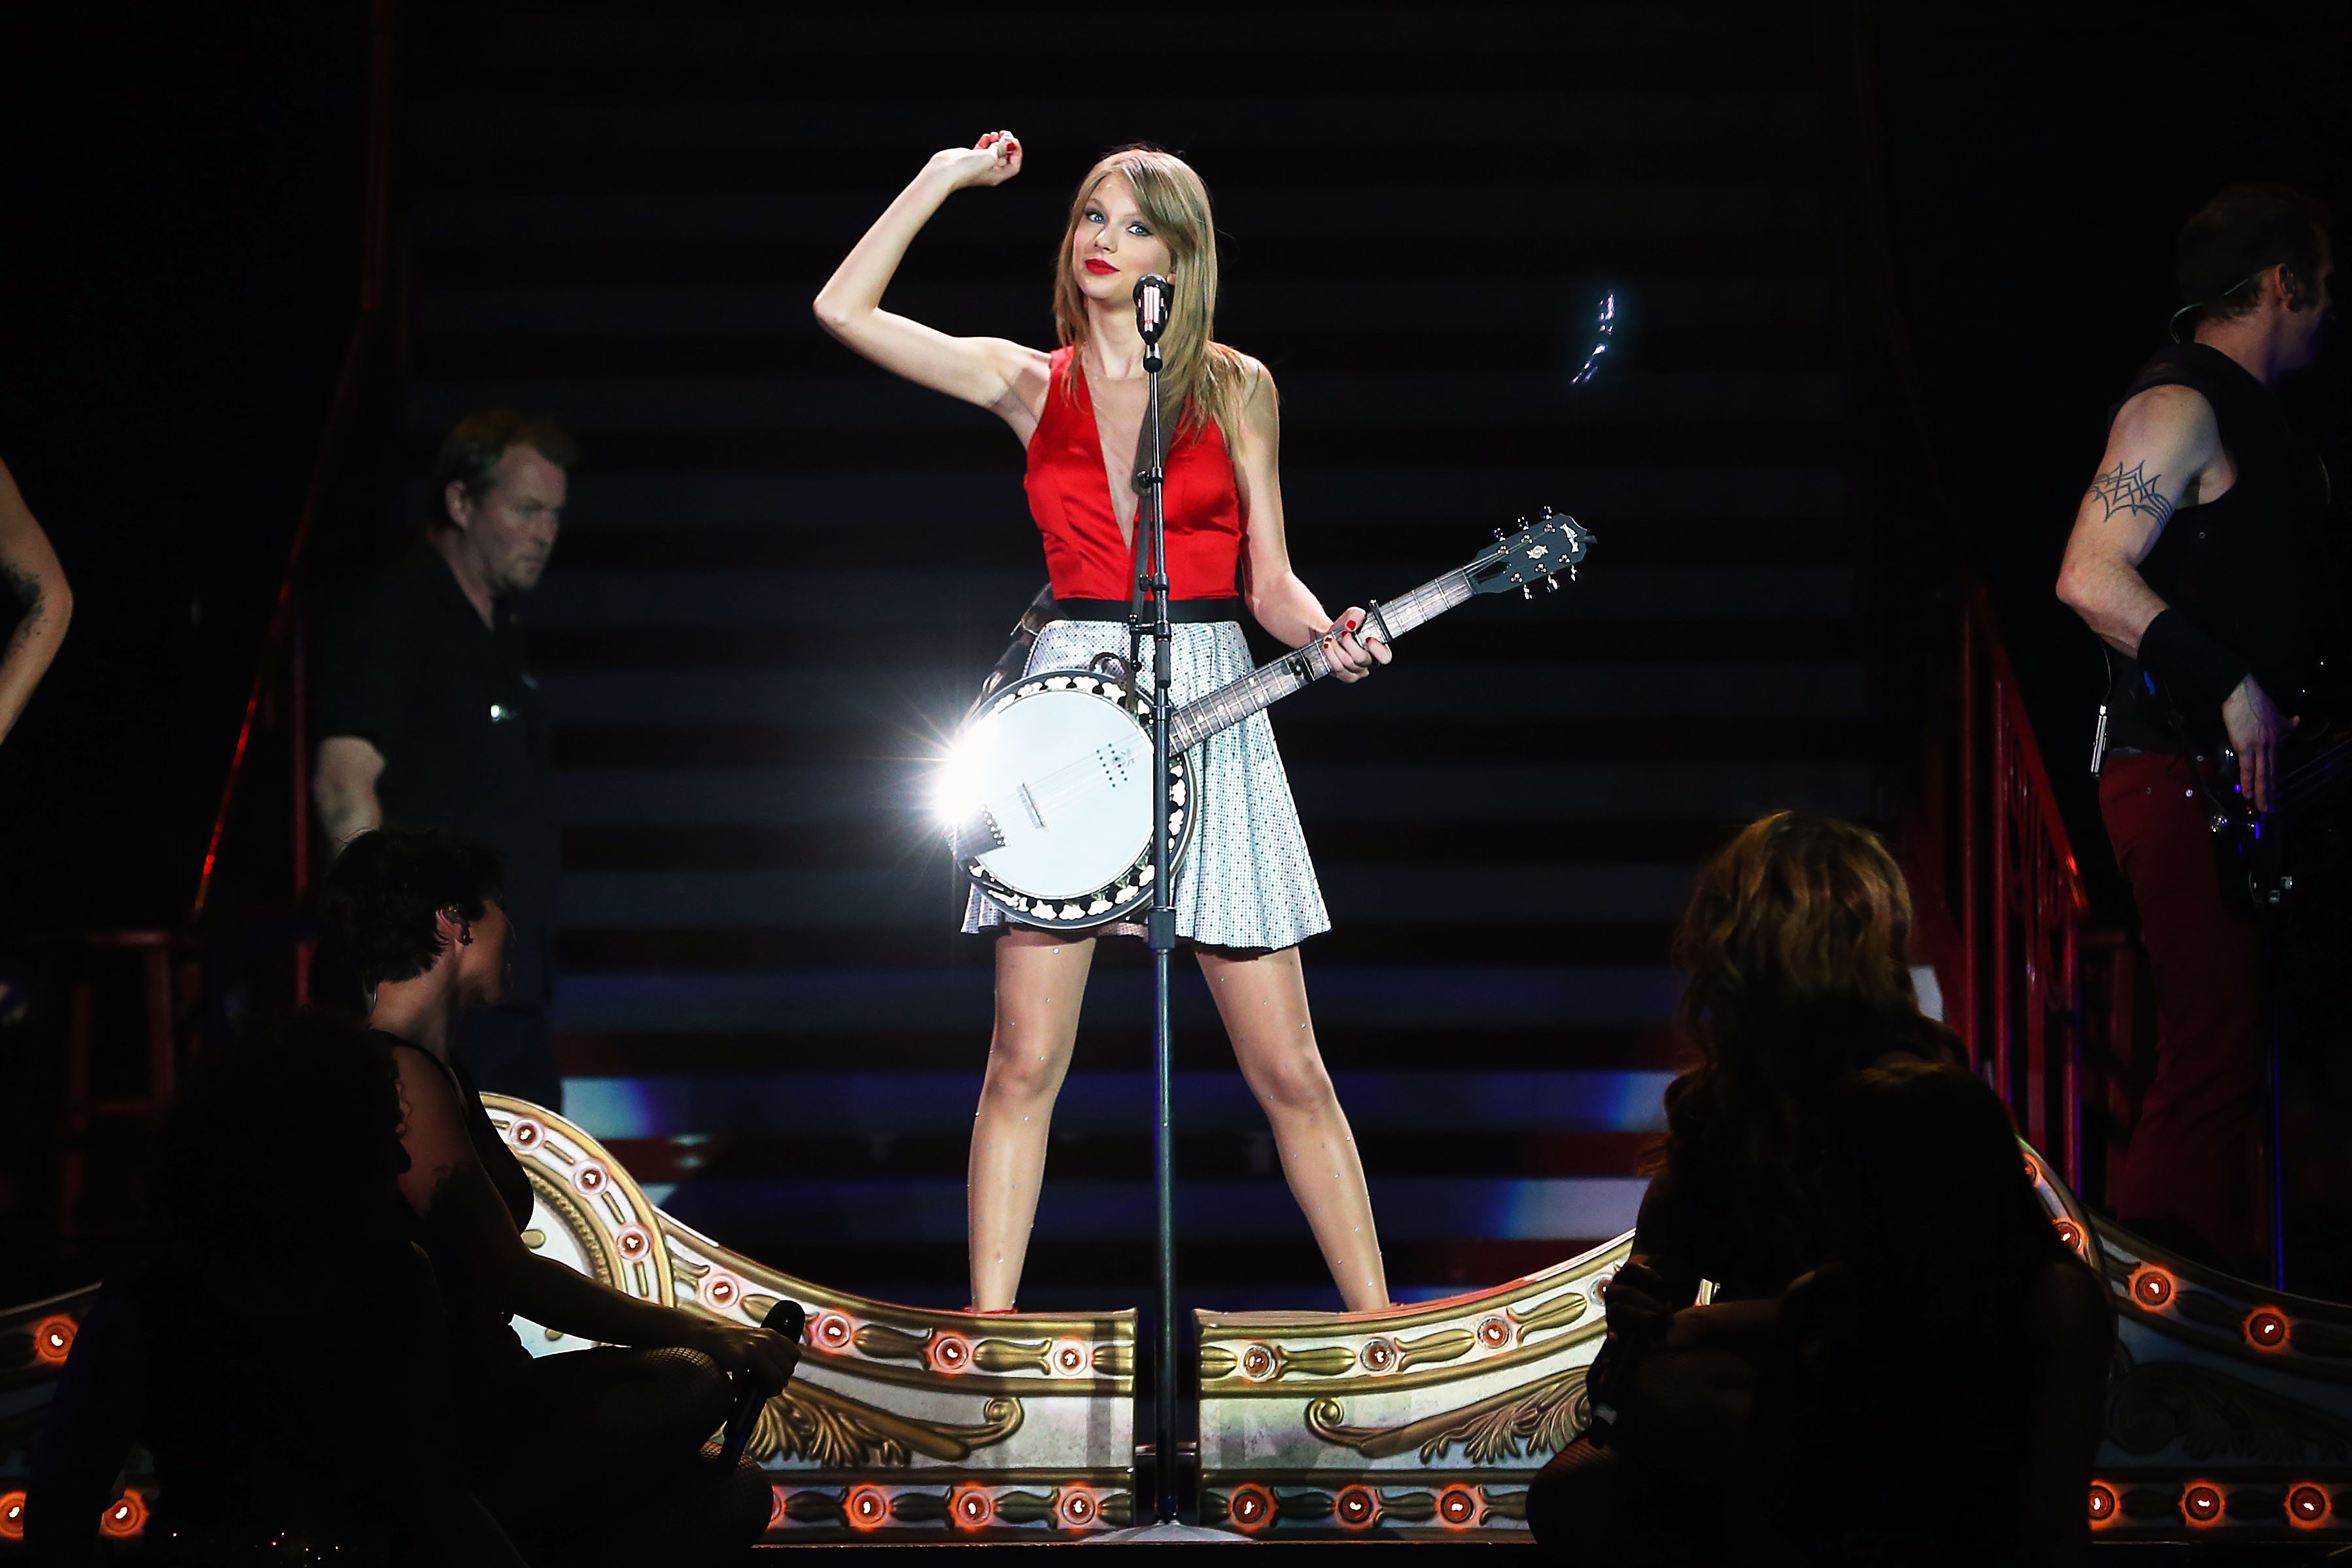 Taylor Swift's RED Tour at Etihad Stadium on December 14, 2013 in Melbourne, Australia